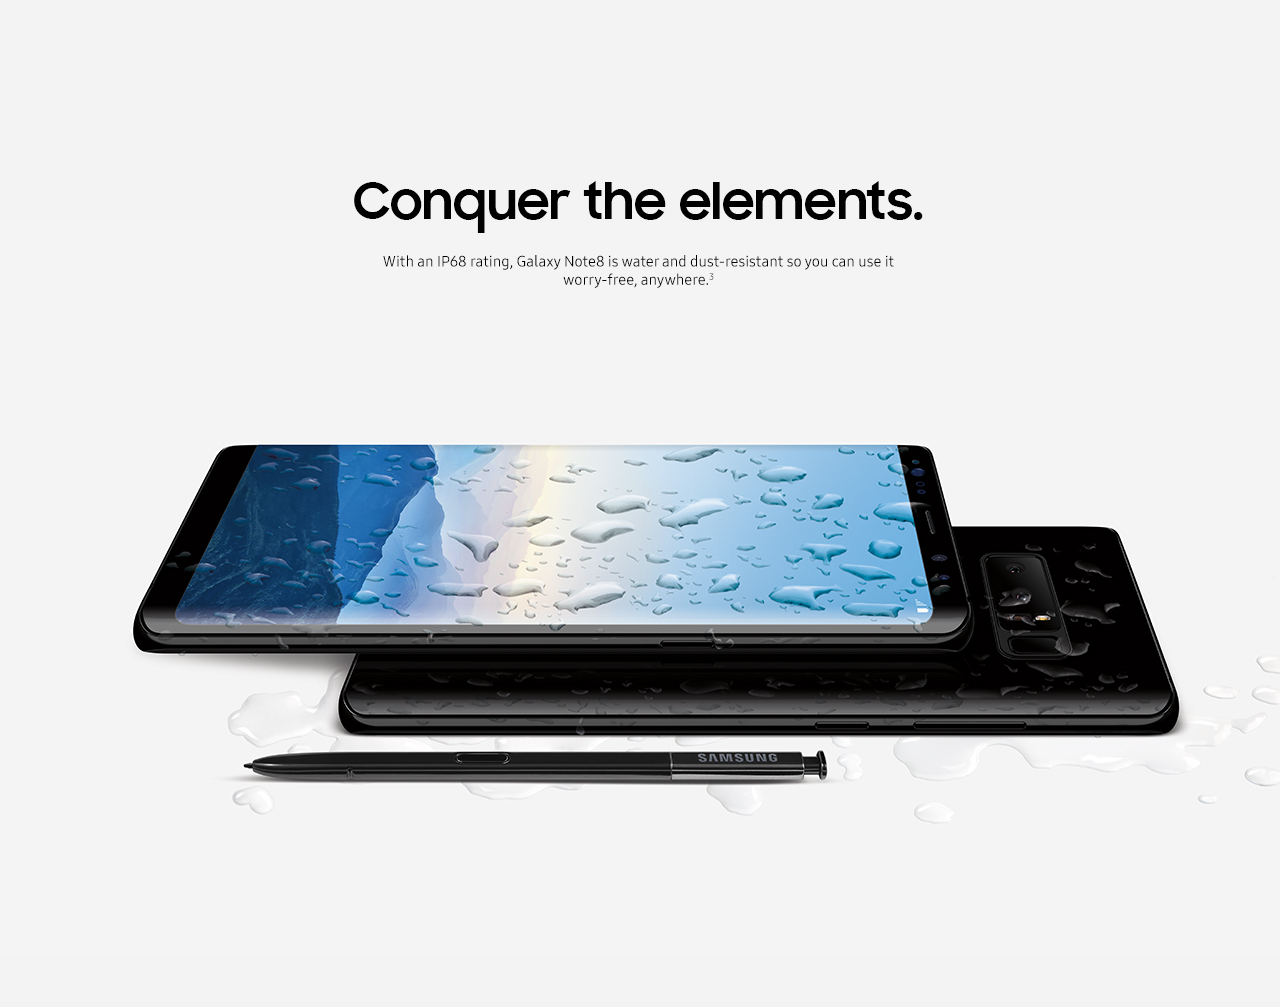 Conquer the elements. With an IP68 rating, Galaxy Note 8 is water and dust-resistant so you can use it worry-free, anywhere.